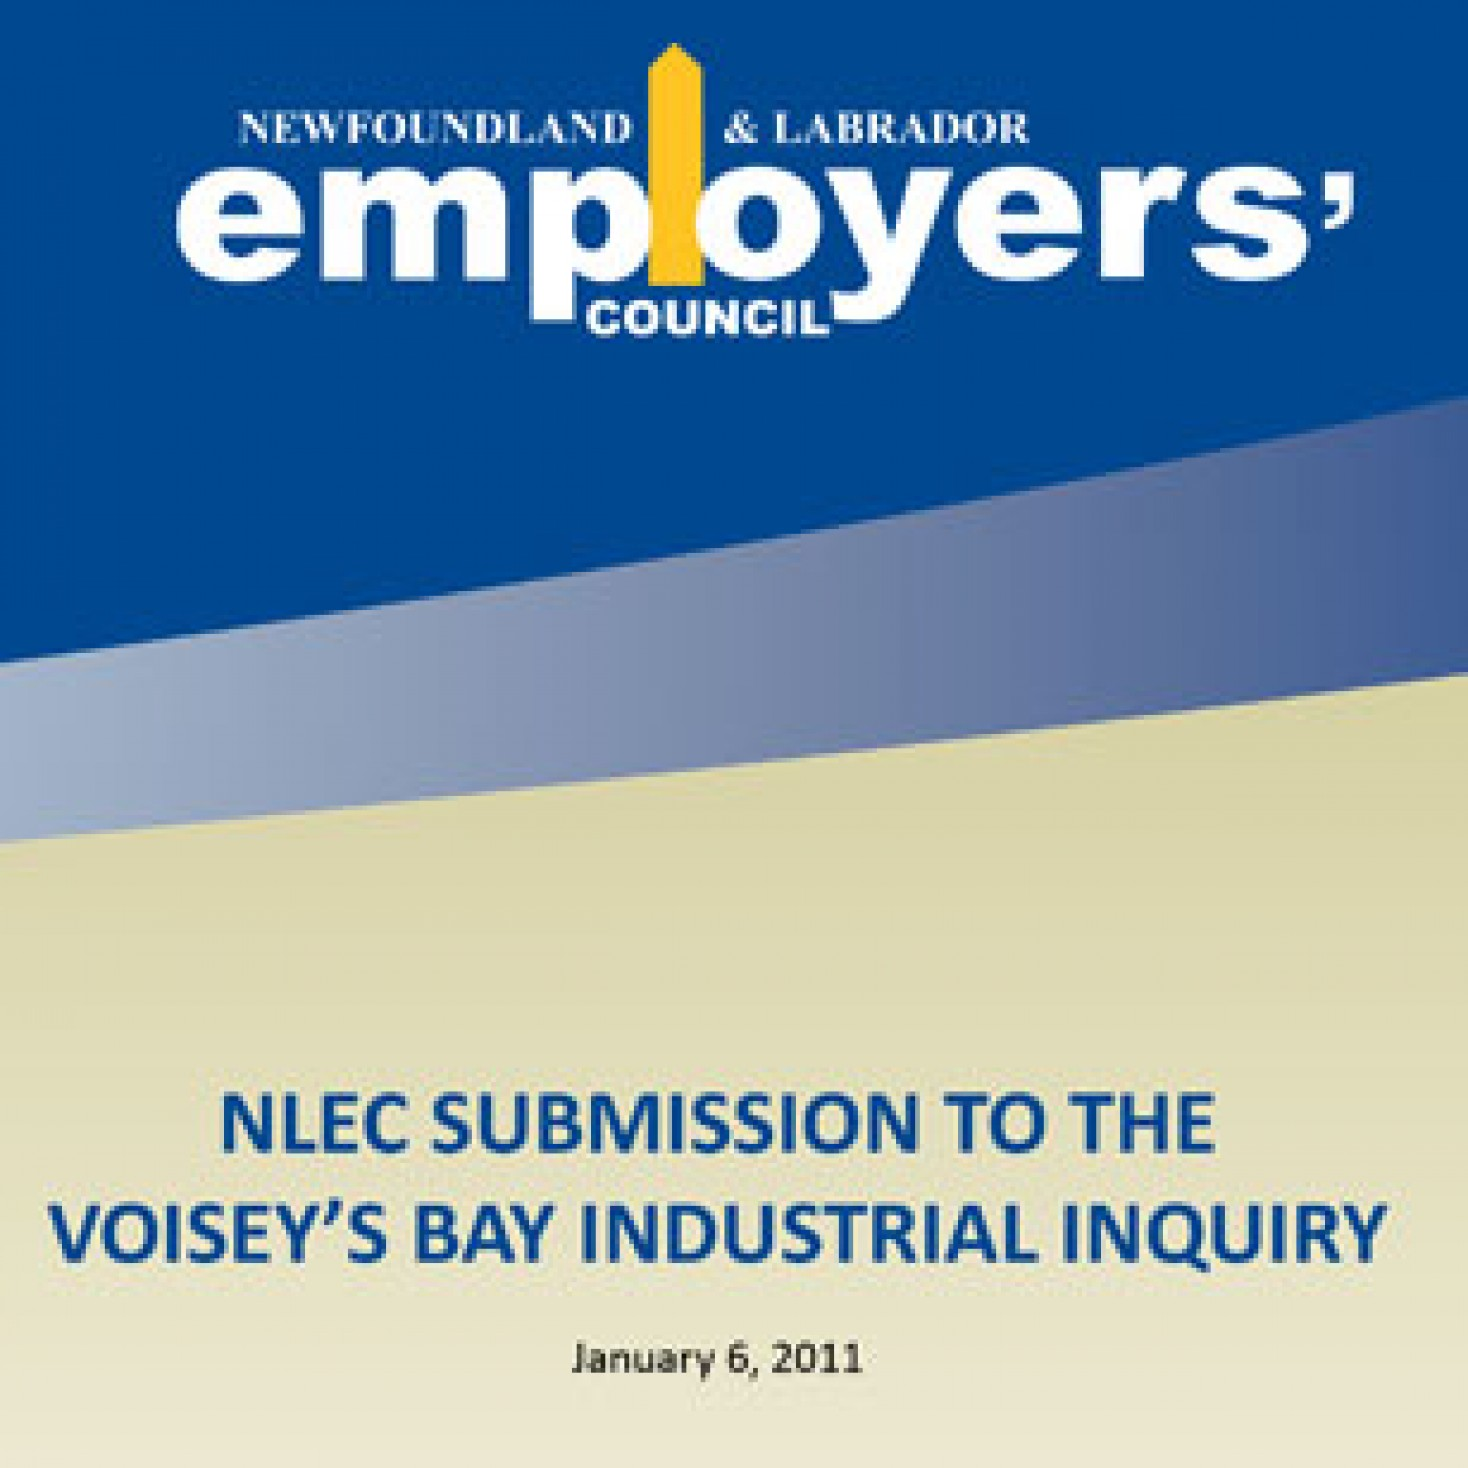 NLEC SUBMISSION TO THE VOISEY'S BAY INDUSTRIAL INQUIRY – PART 2